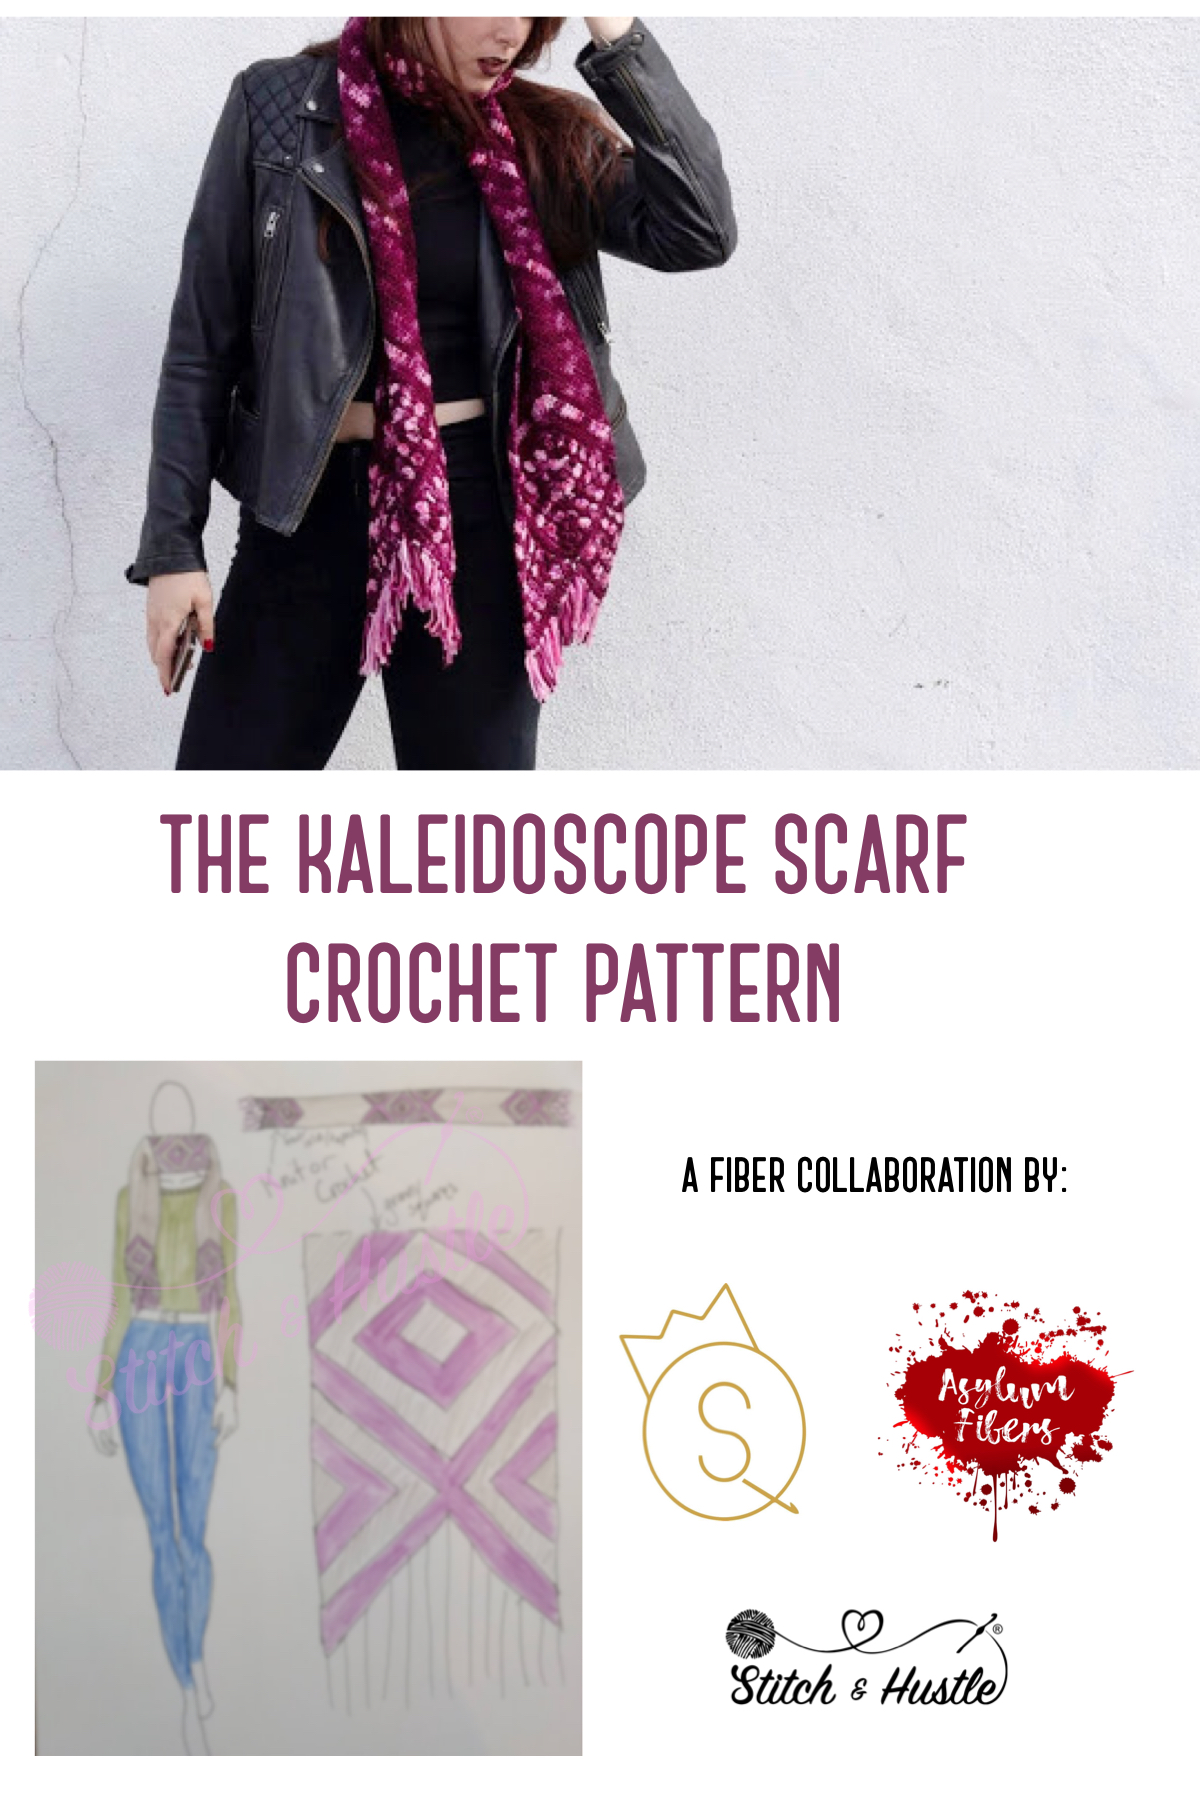 Katie of The Queen Stitch created a BoHo chic scarf design